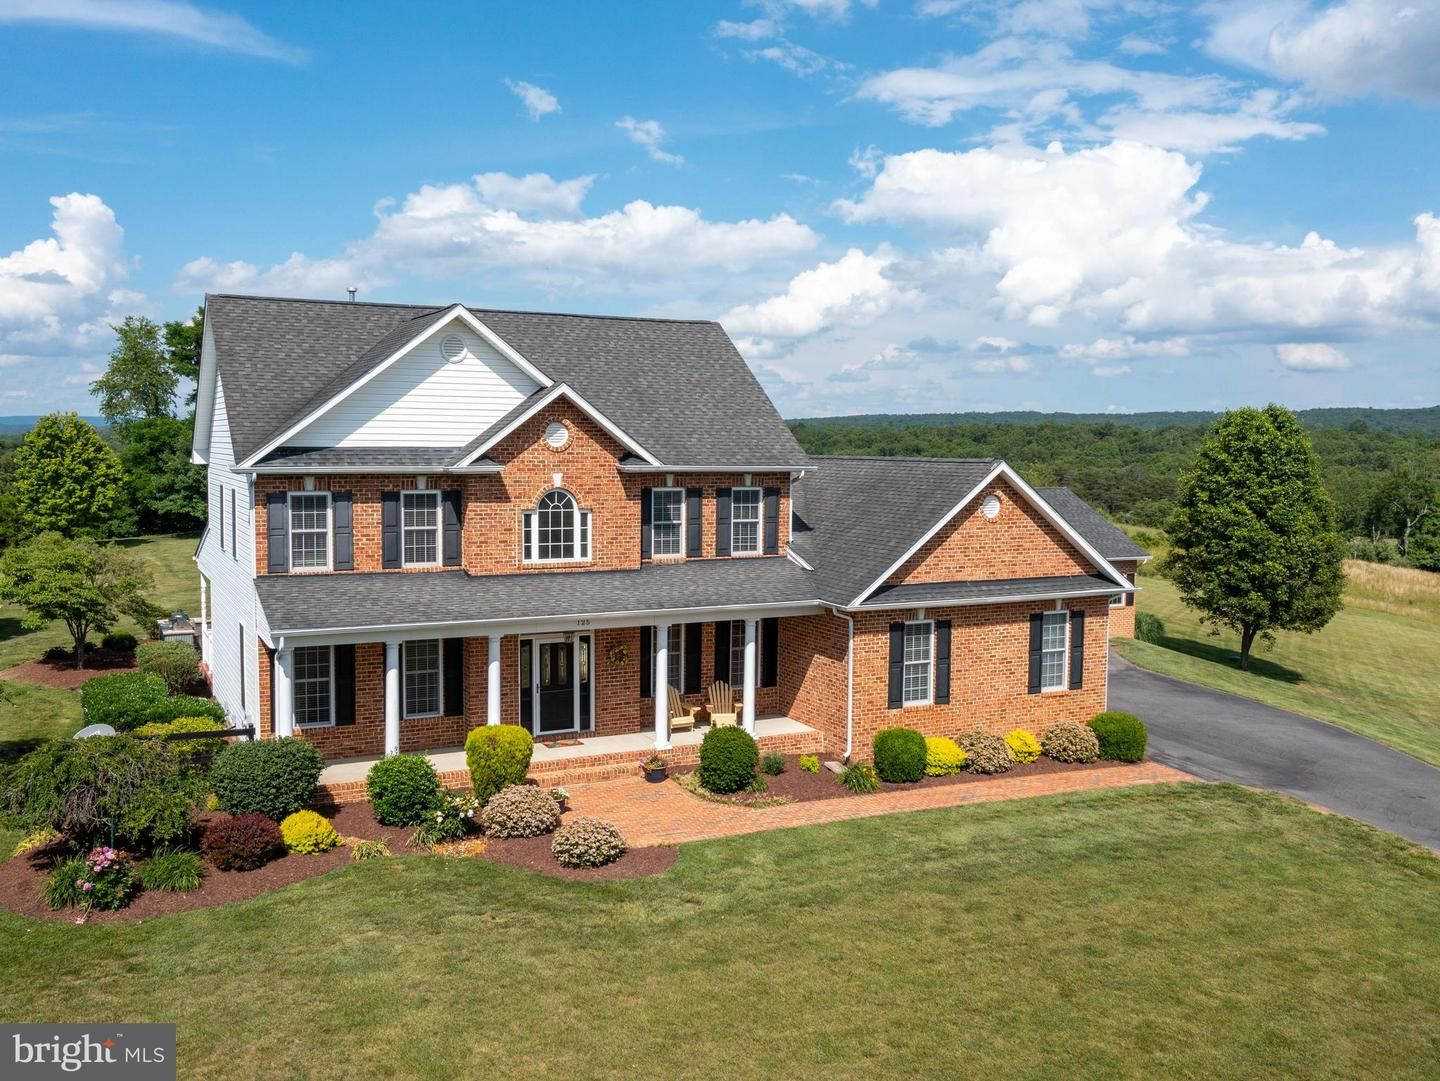 125 Tuckers Valley Drive